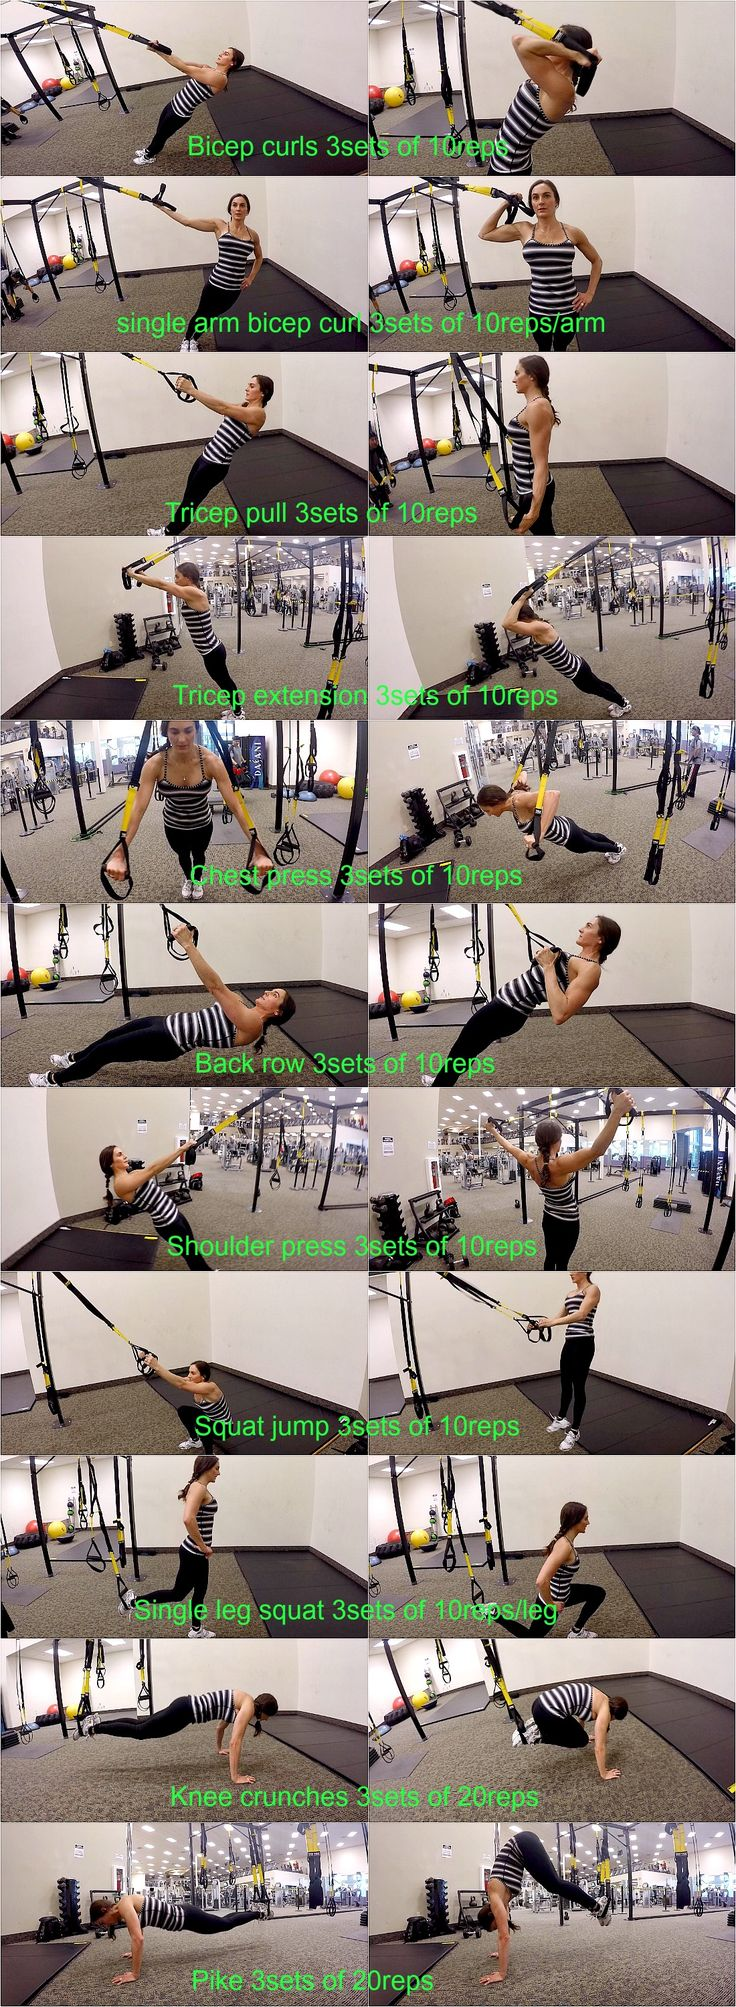 10 Weeks To Fitness-Day 47: Active Rest TRX